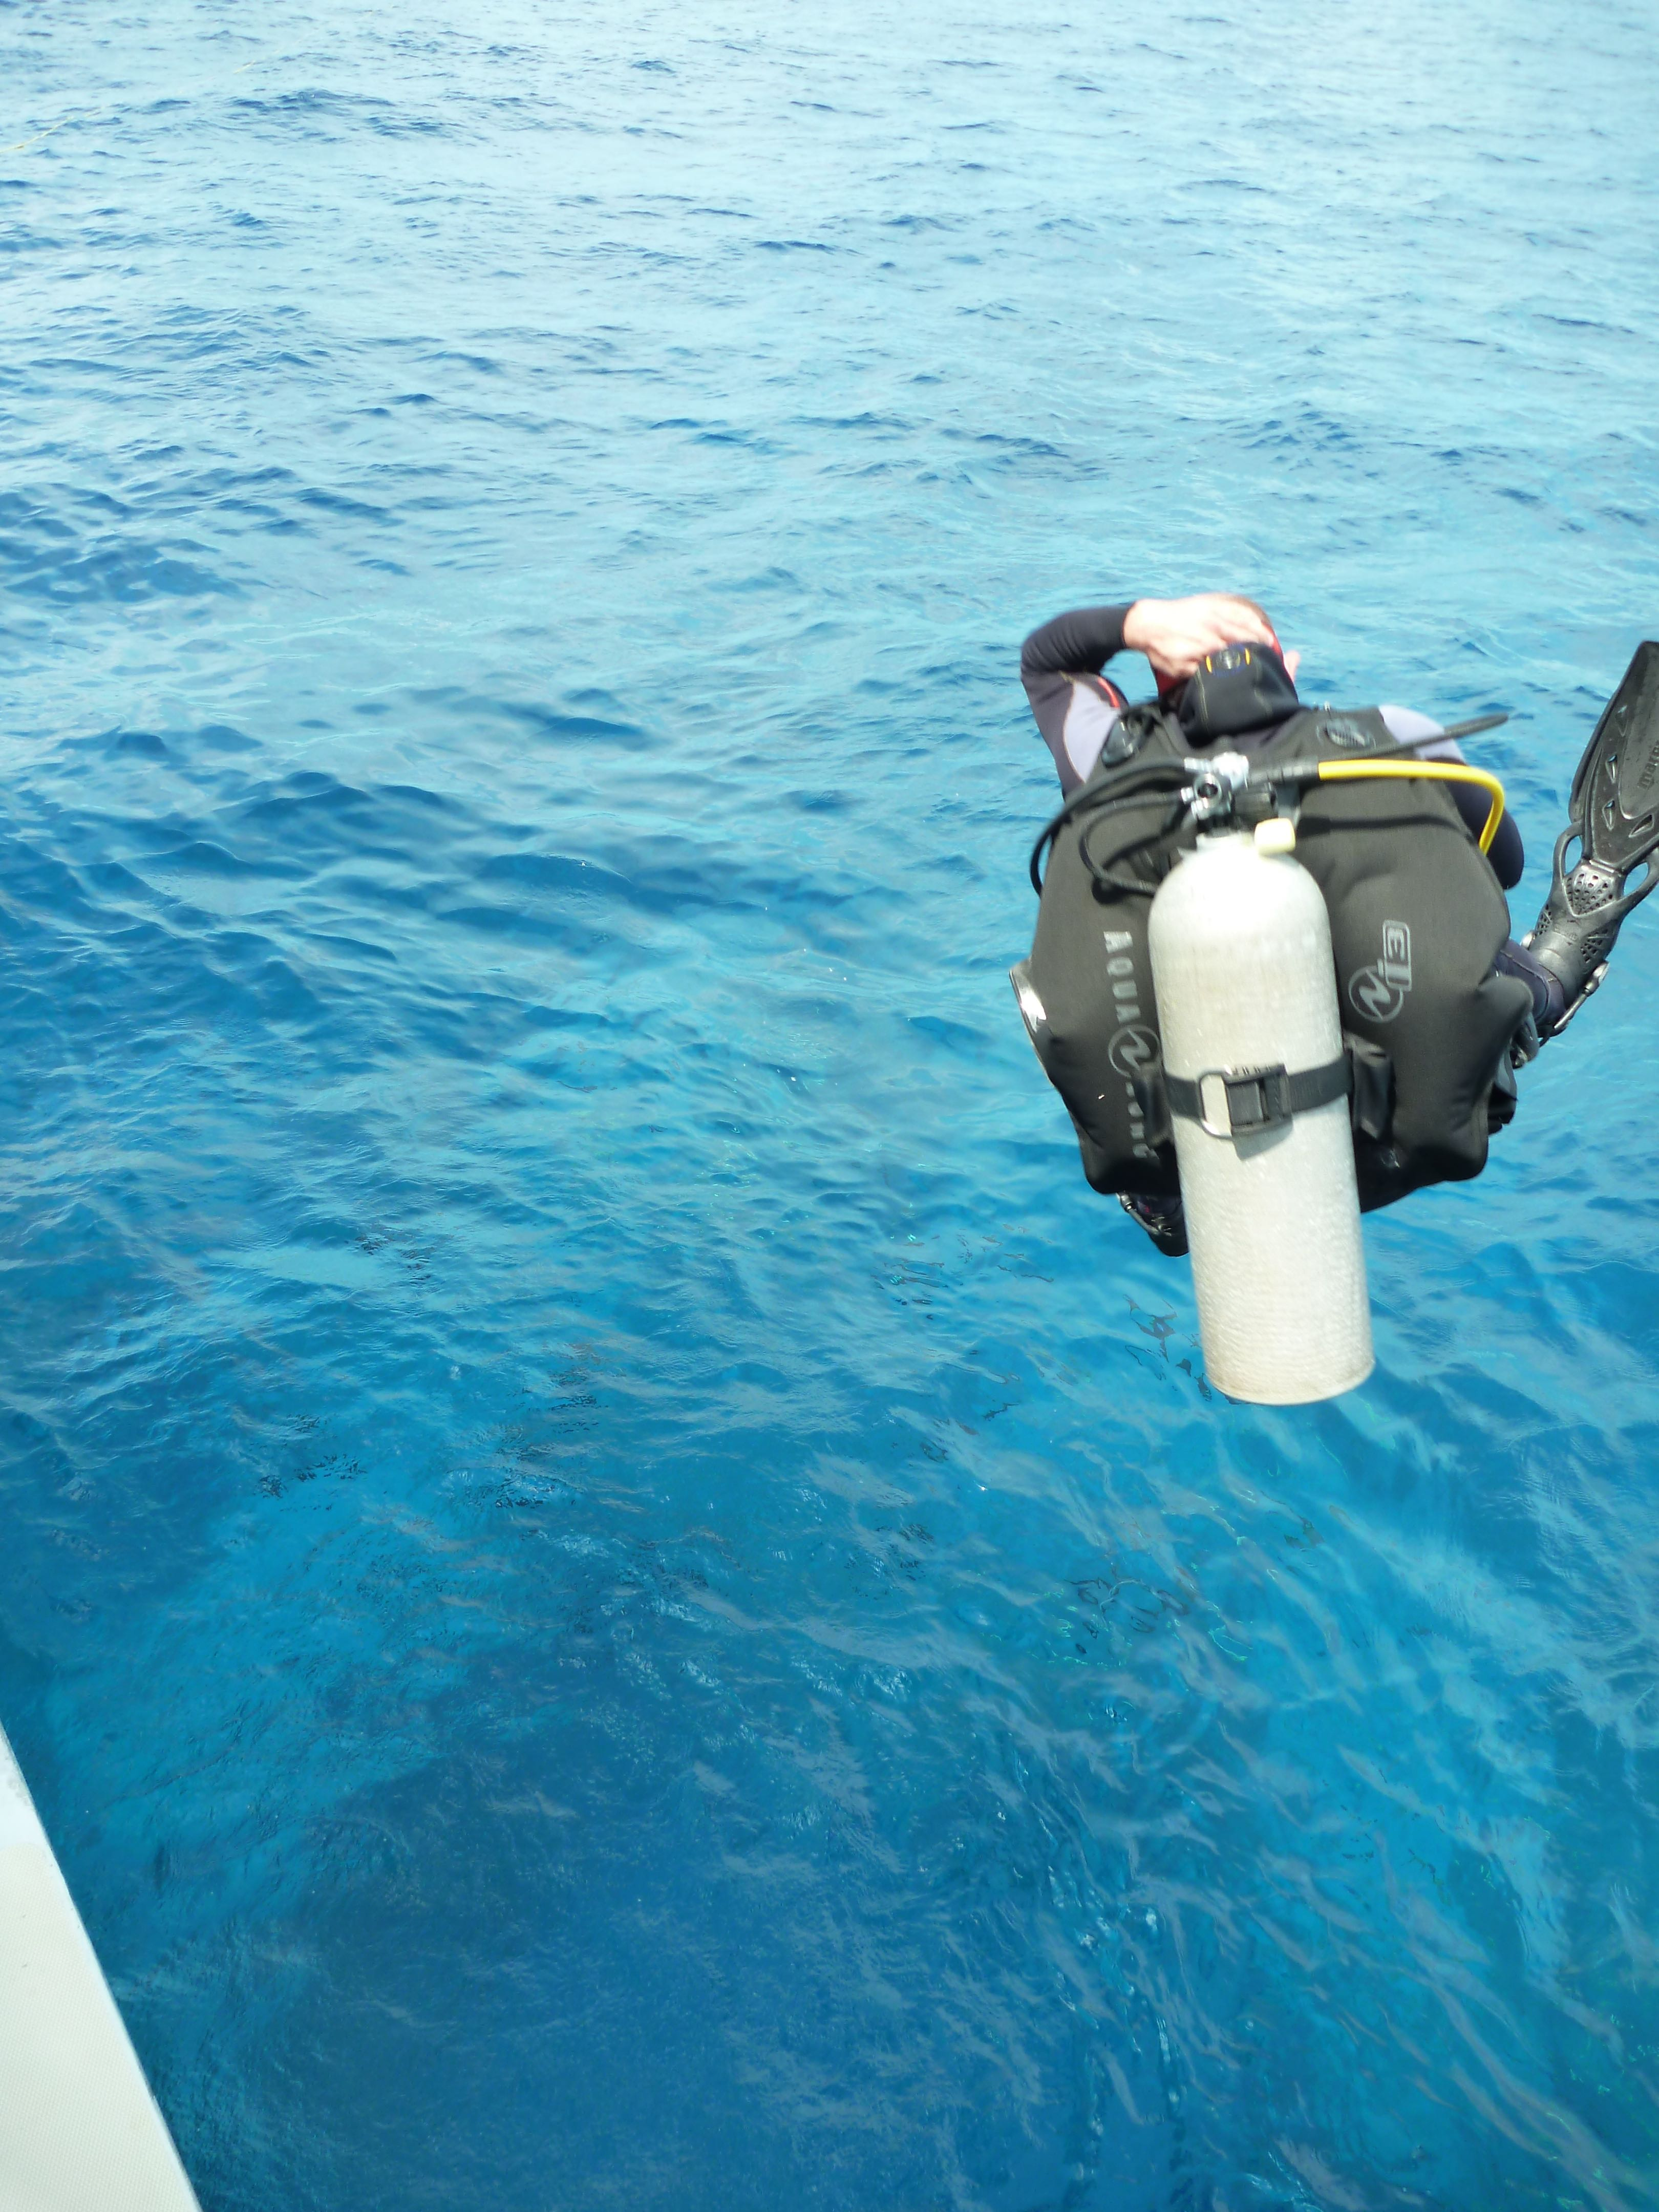 Scuba dive blog dave smith is a true freestyler with his cannon ball scuba dive entry west caicos xflitez Images